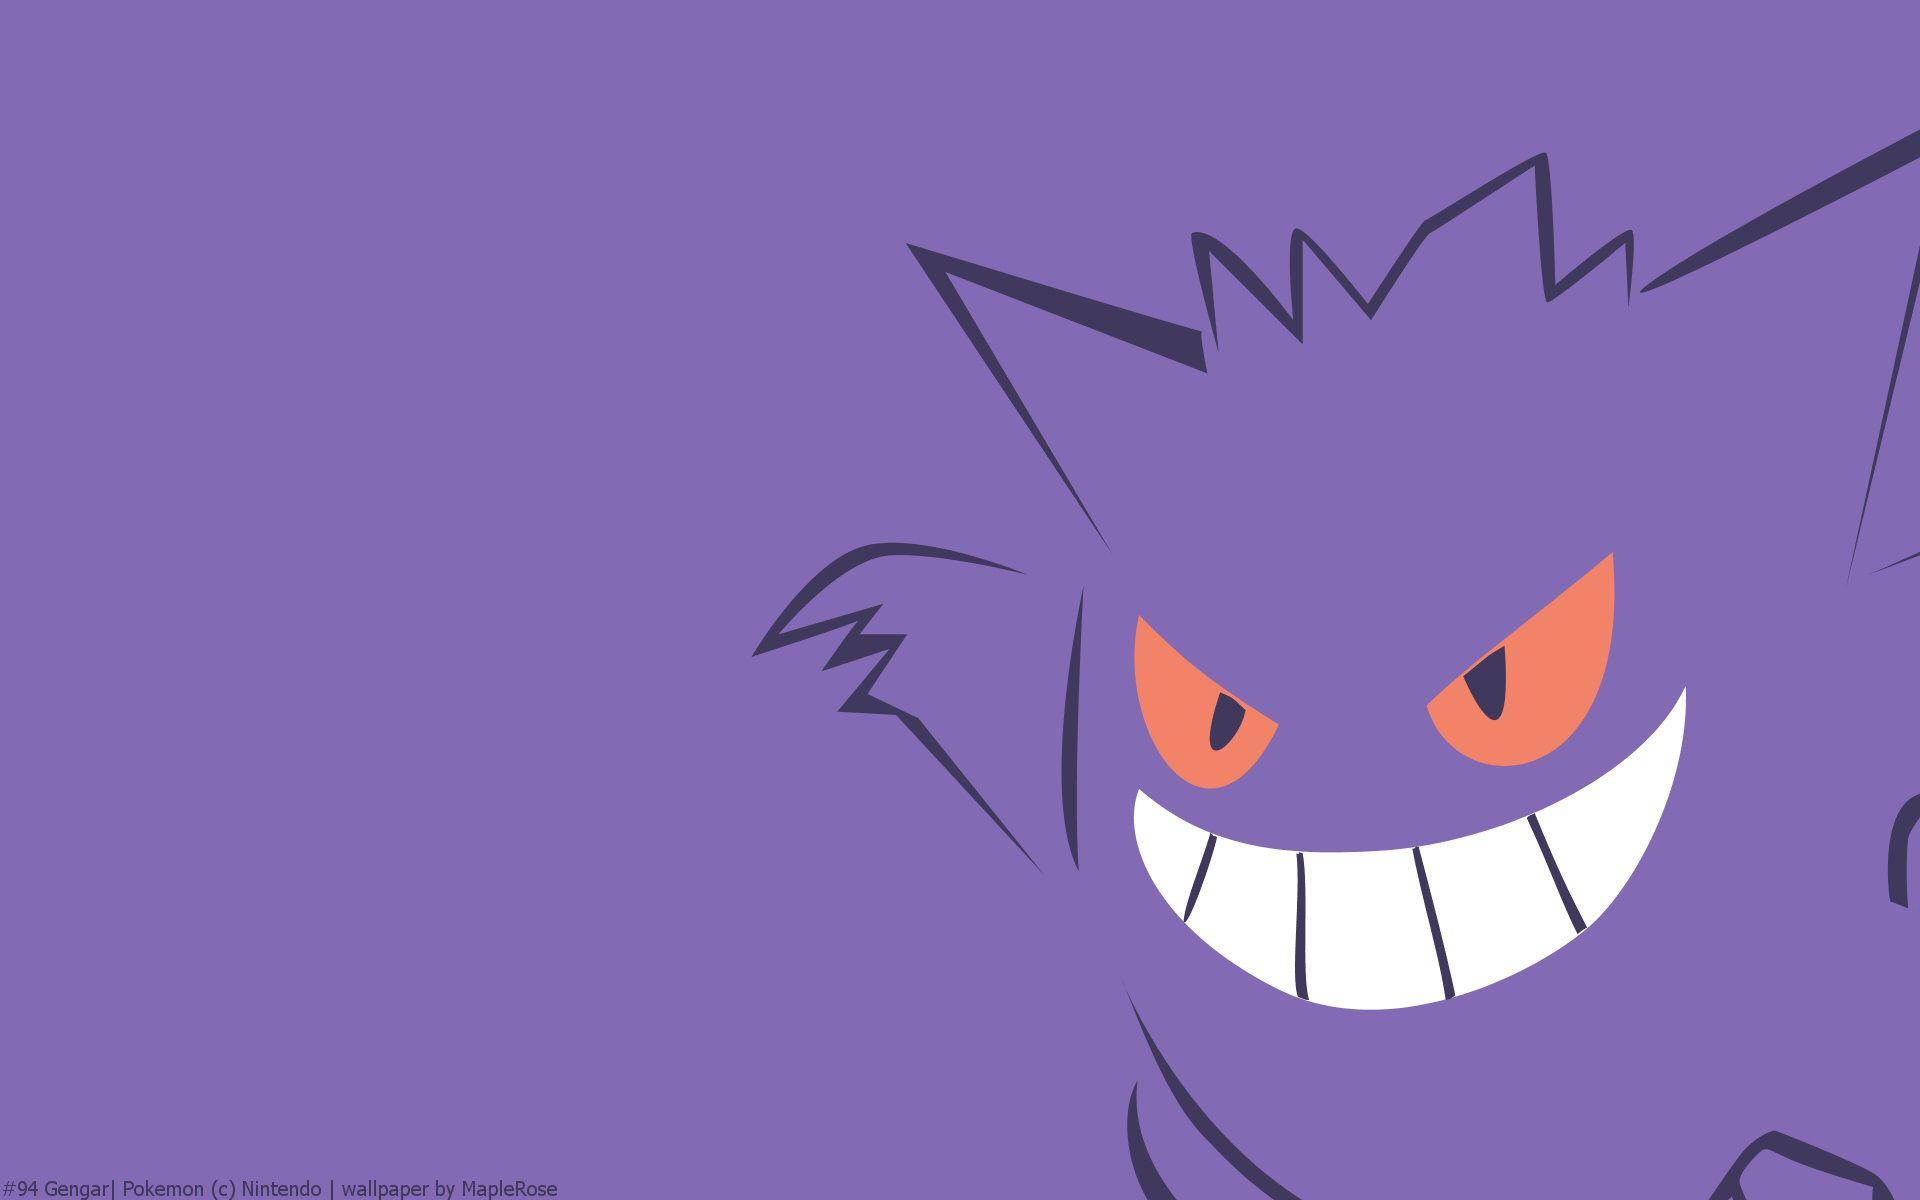 Gengar Pokemon HD Wallpaper - Free HD wallpapers, Iphone, Samsung ...